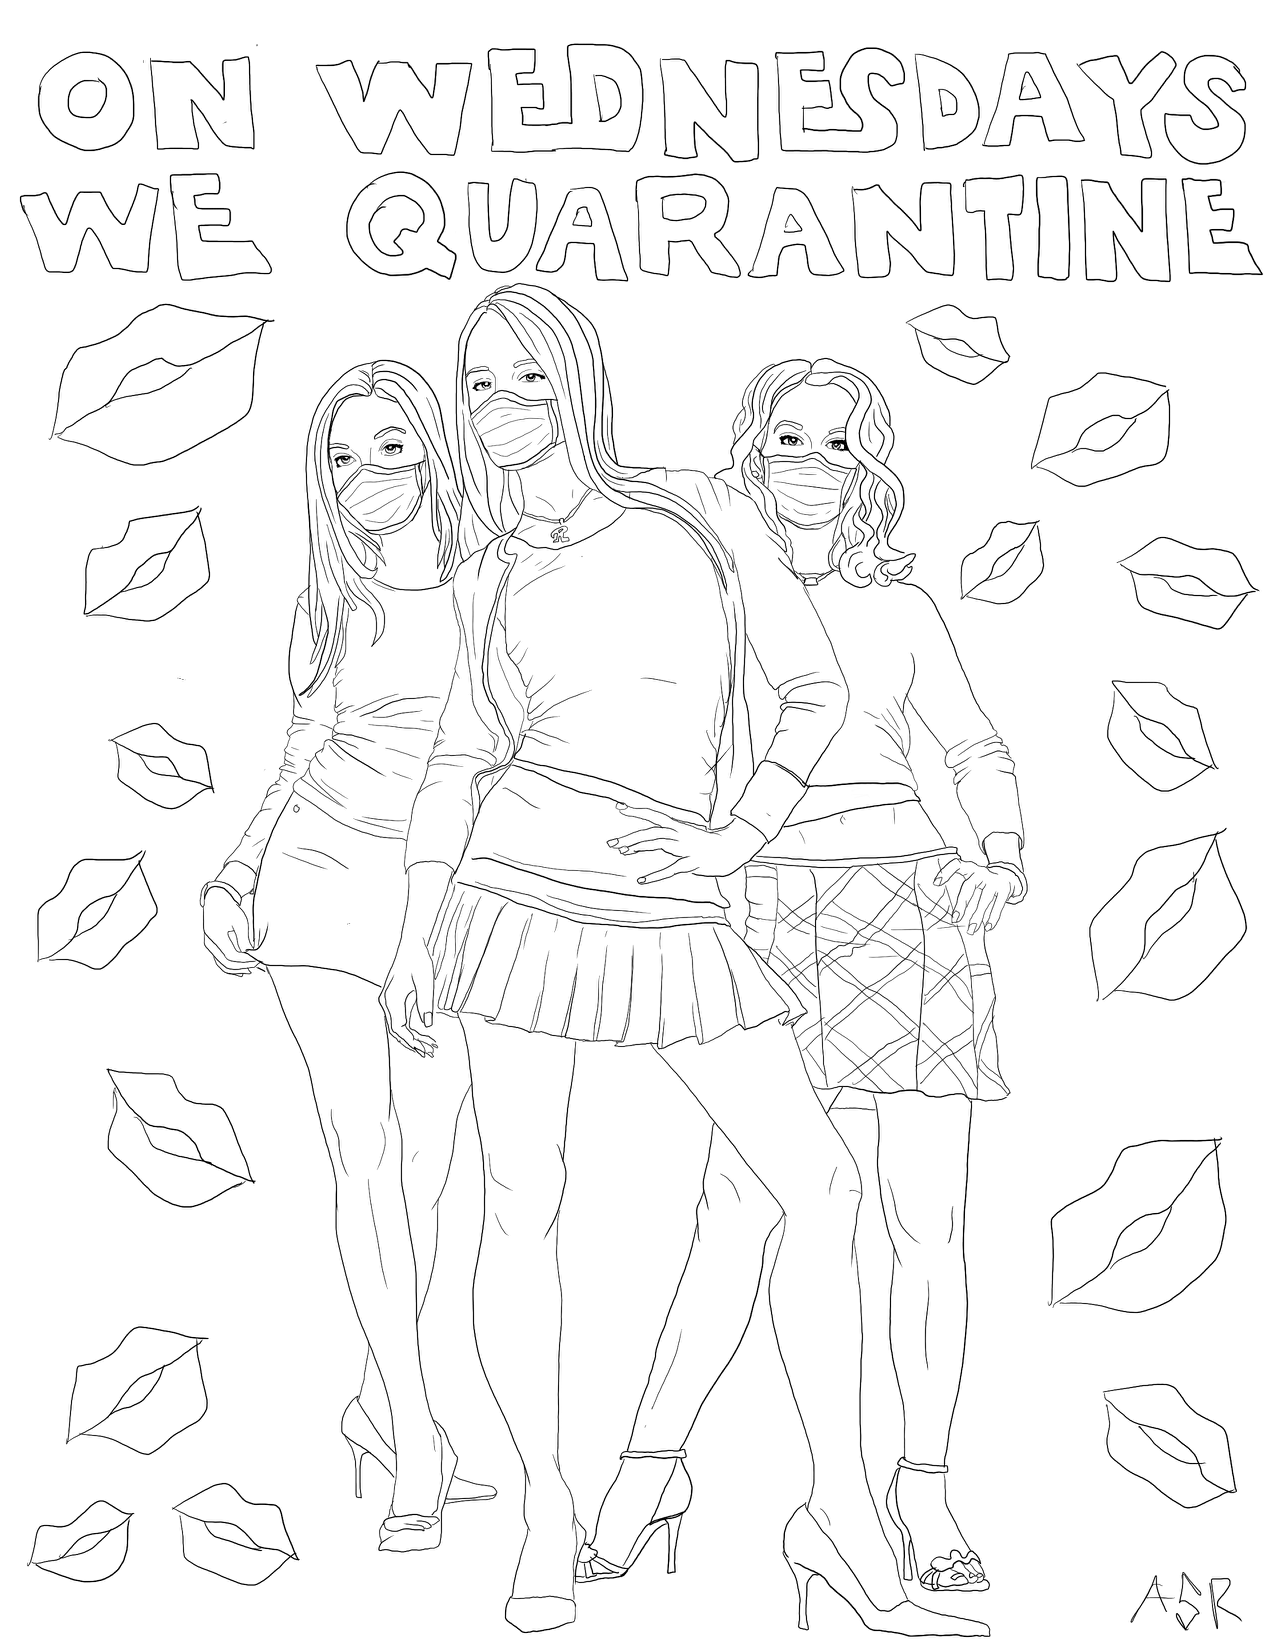 These Are The Best Quarantine Coloring Pages Paste